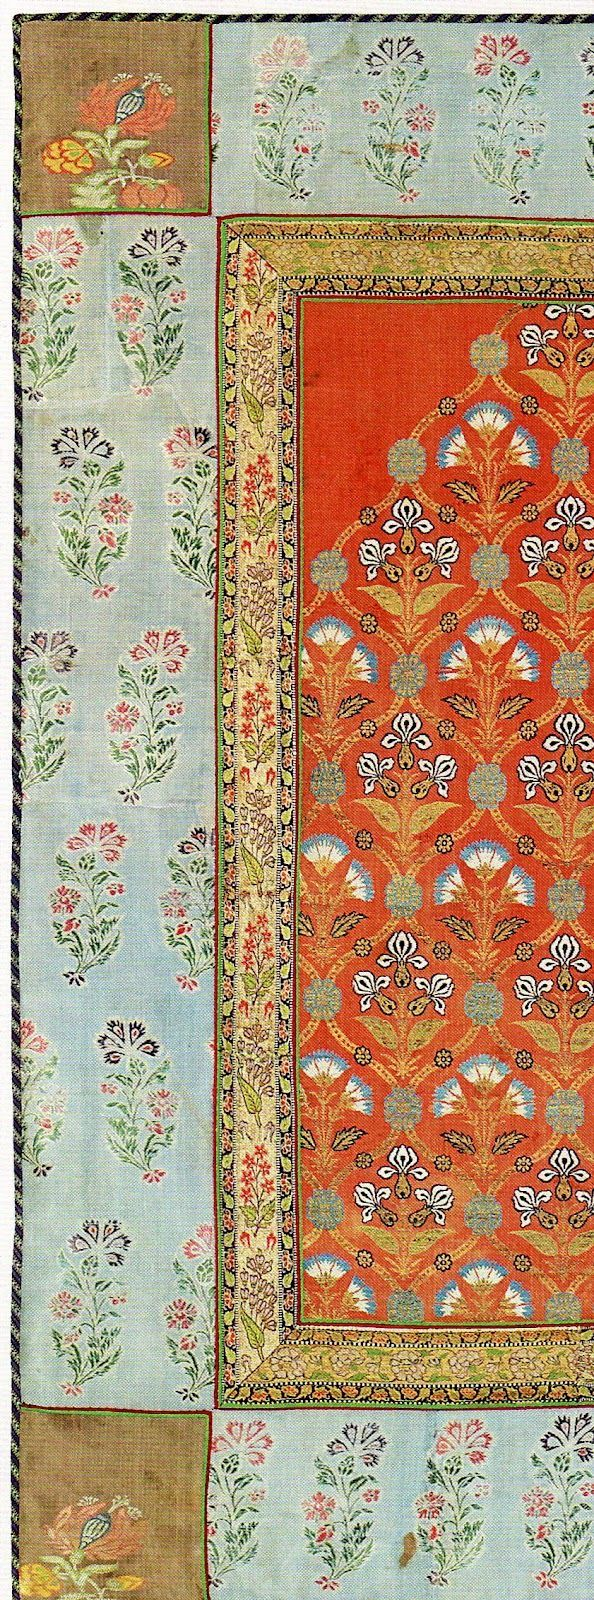 18th Century North Indian Textile